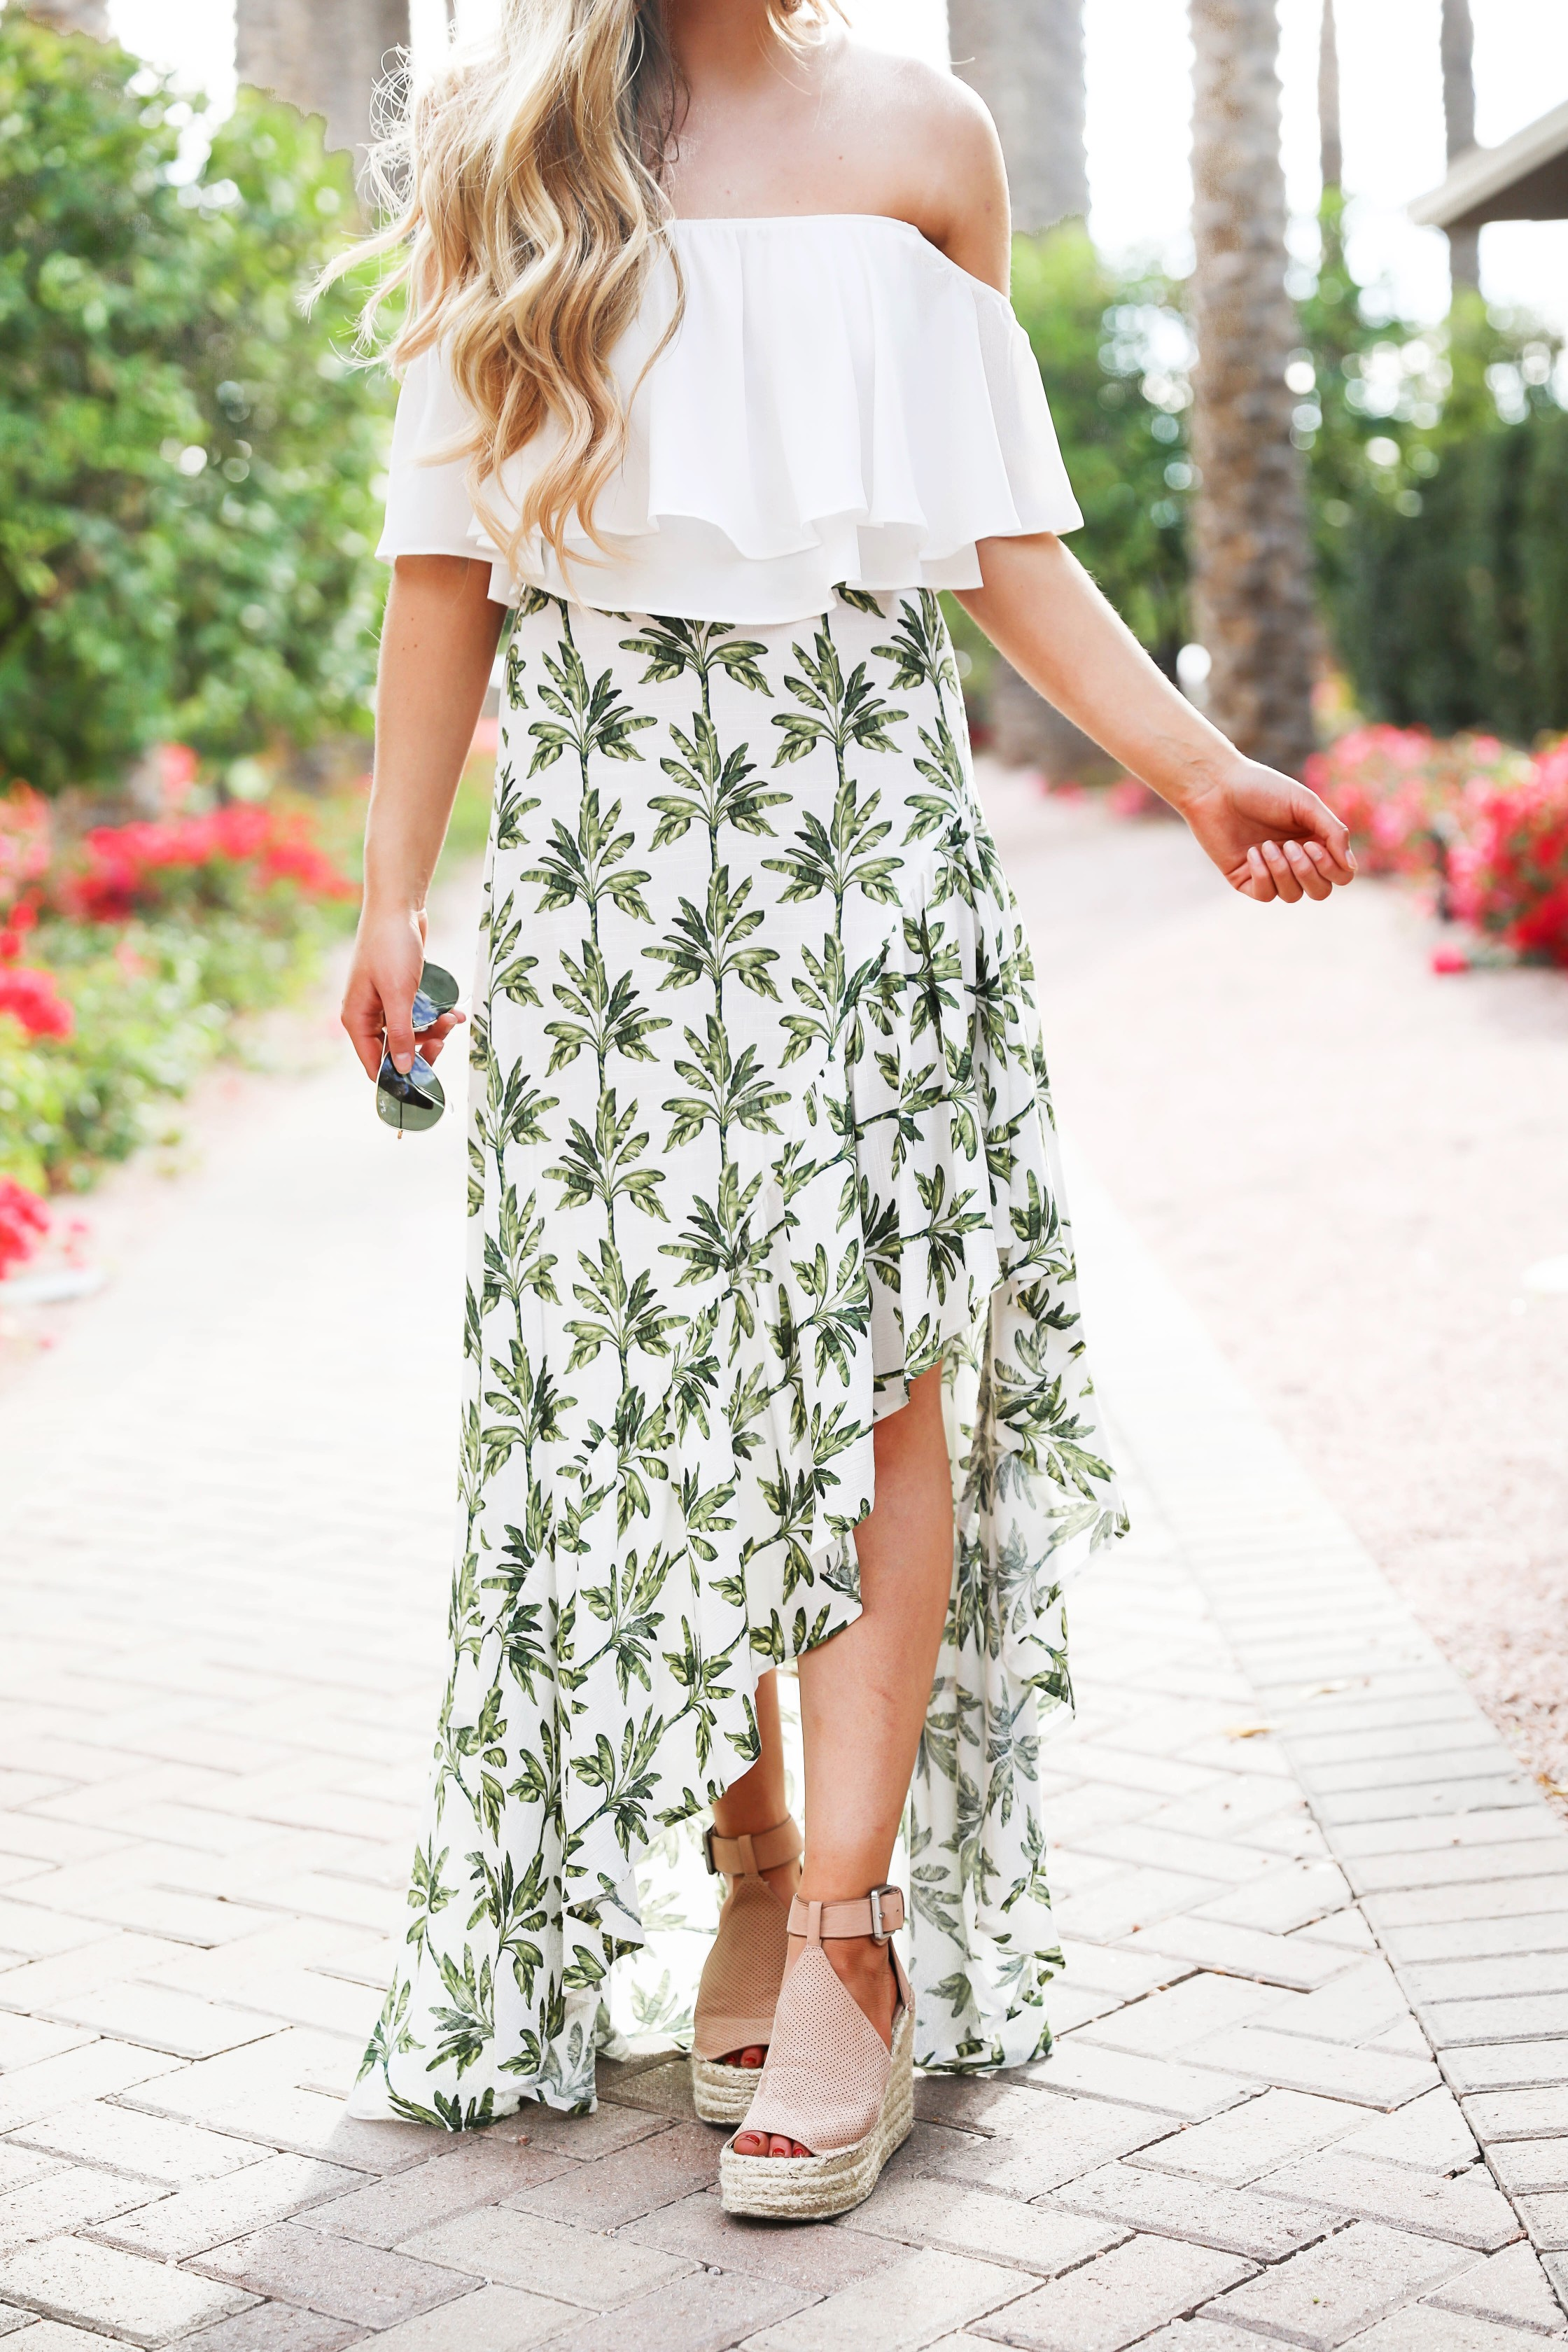 Show me your mumu palm maxi skirt and white flowy crop top! Such an adorable spring break outfit! Cute beach look for summer! Details on fashion blog daily dose of charm by lauren lindmark